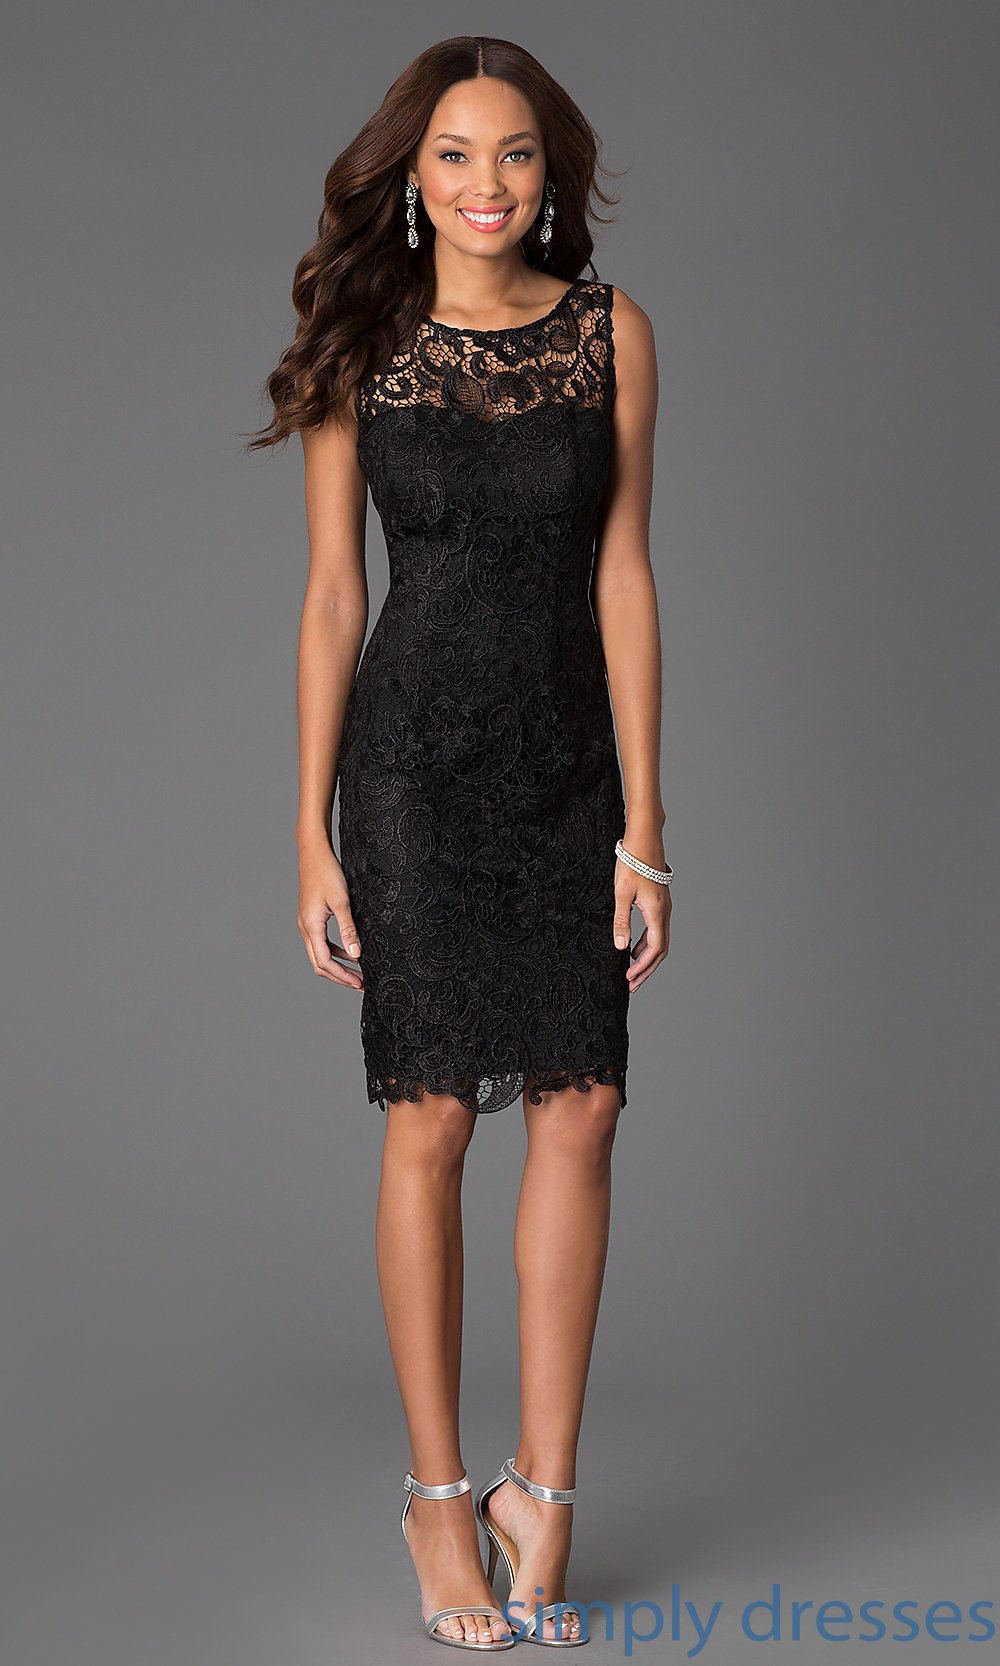 Sleeveless Lace Knee Length Cocktail Dress in 2019  posh frock  Dresses Lace dress Knee